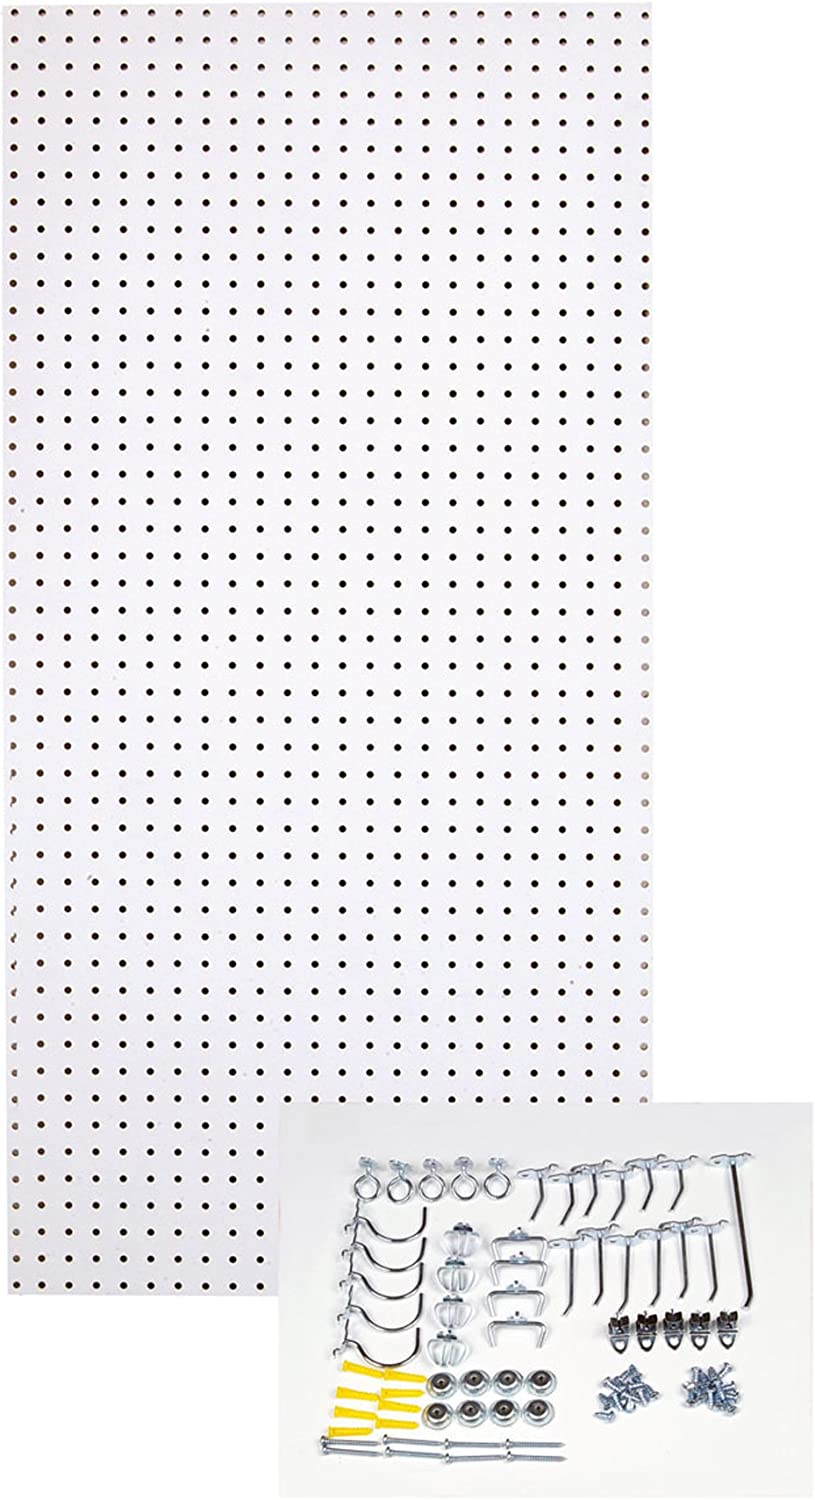 Triton Products Tpb 36wh Kit 24 Inch W X 48 Inch H Custom Painted Heavy Duty Tempered Round Hole Pegboards With Locking Hook Assortment White Amazon Com